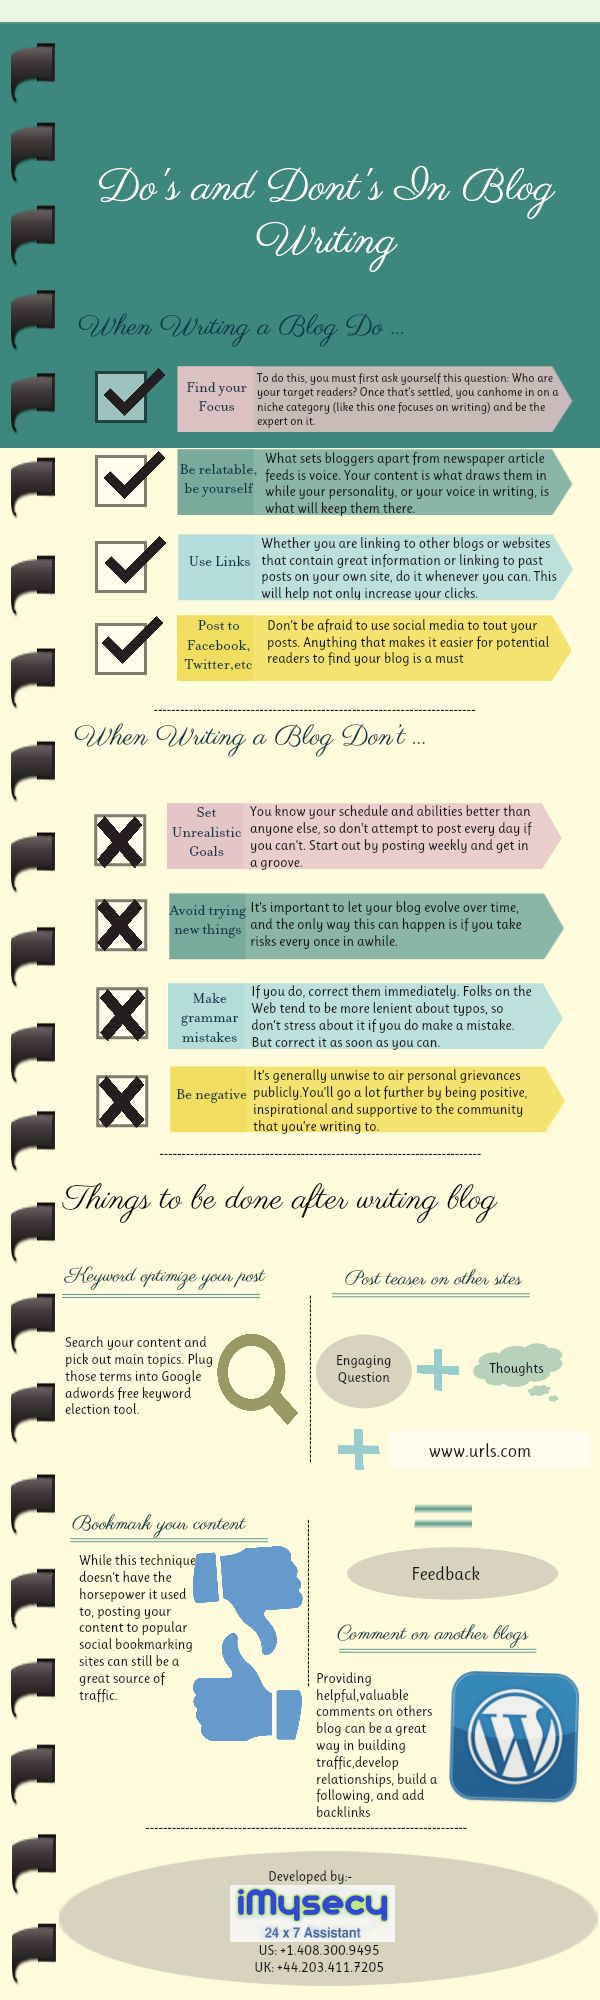 Do's and dont's in blog writing: